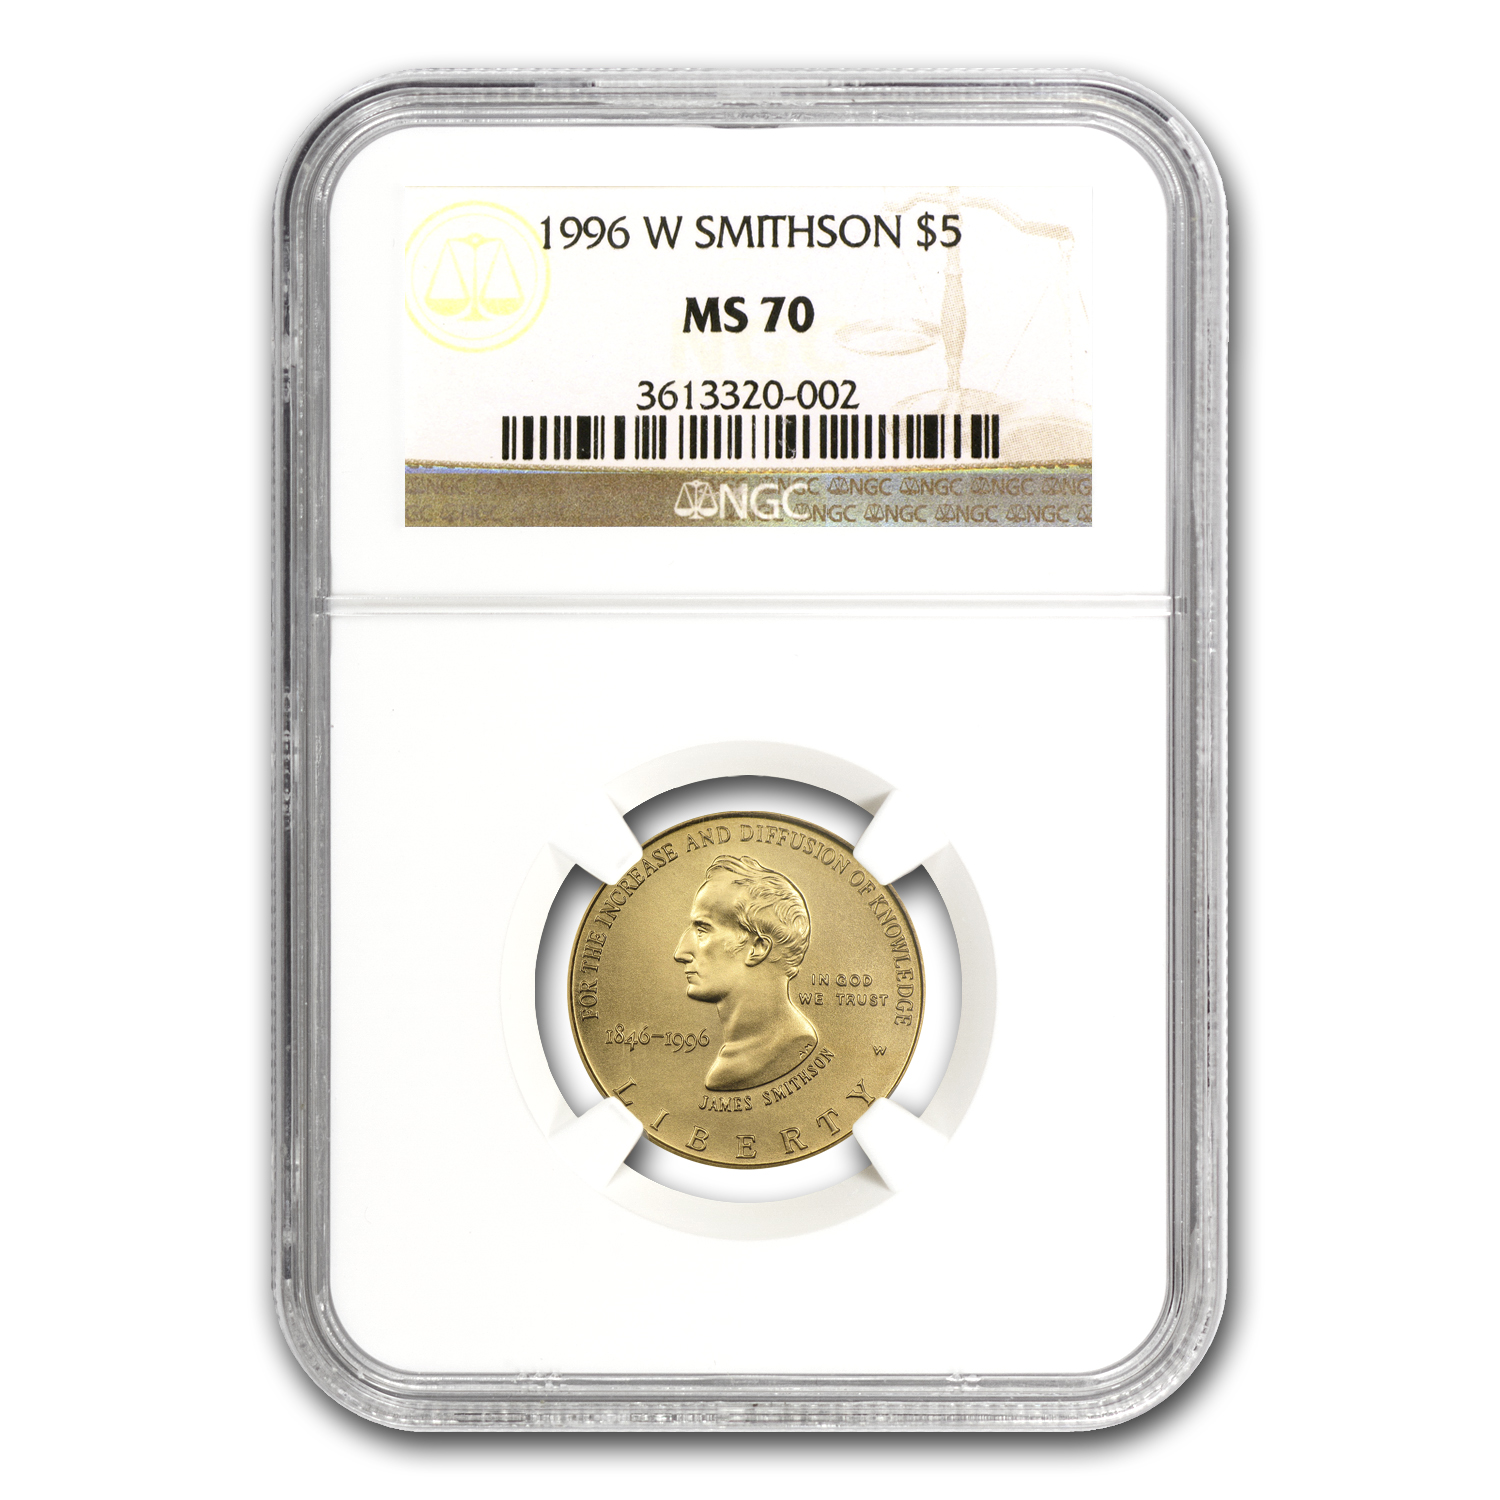 1996-W Smithsonian Anniversary - $5 Gold Commem - MS-70 NGC